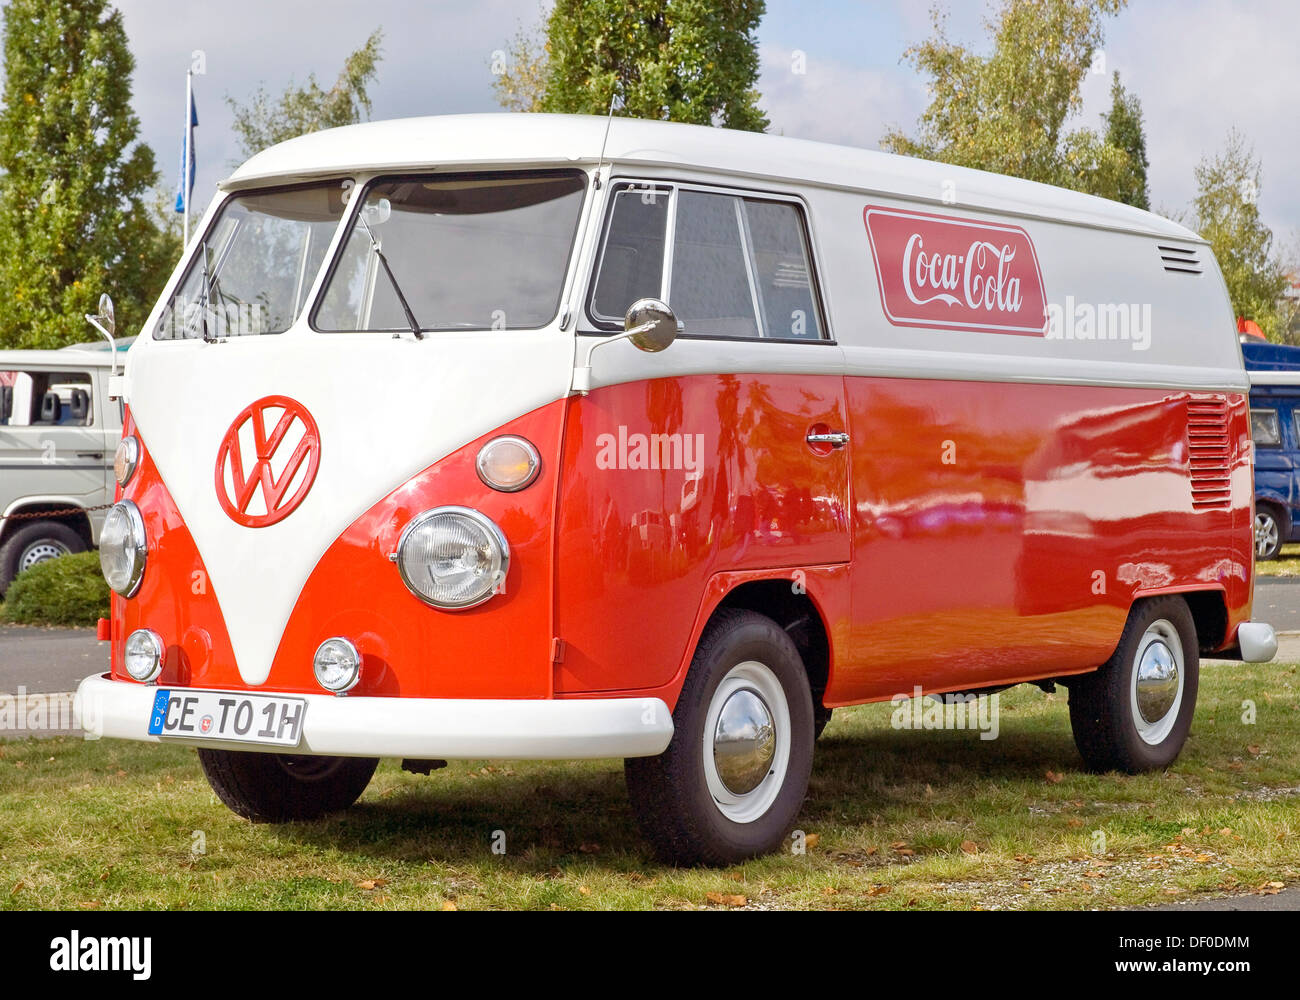 Vw t1 stock photos vw t1 stock images alamy vw t1 with coca cola advertising stock image altavistaventures Image collections